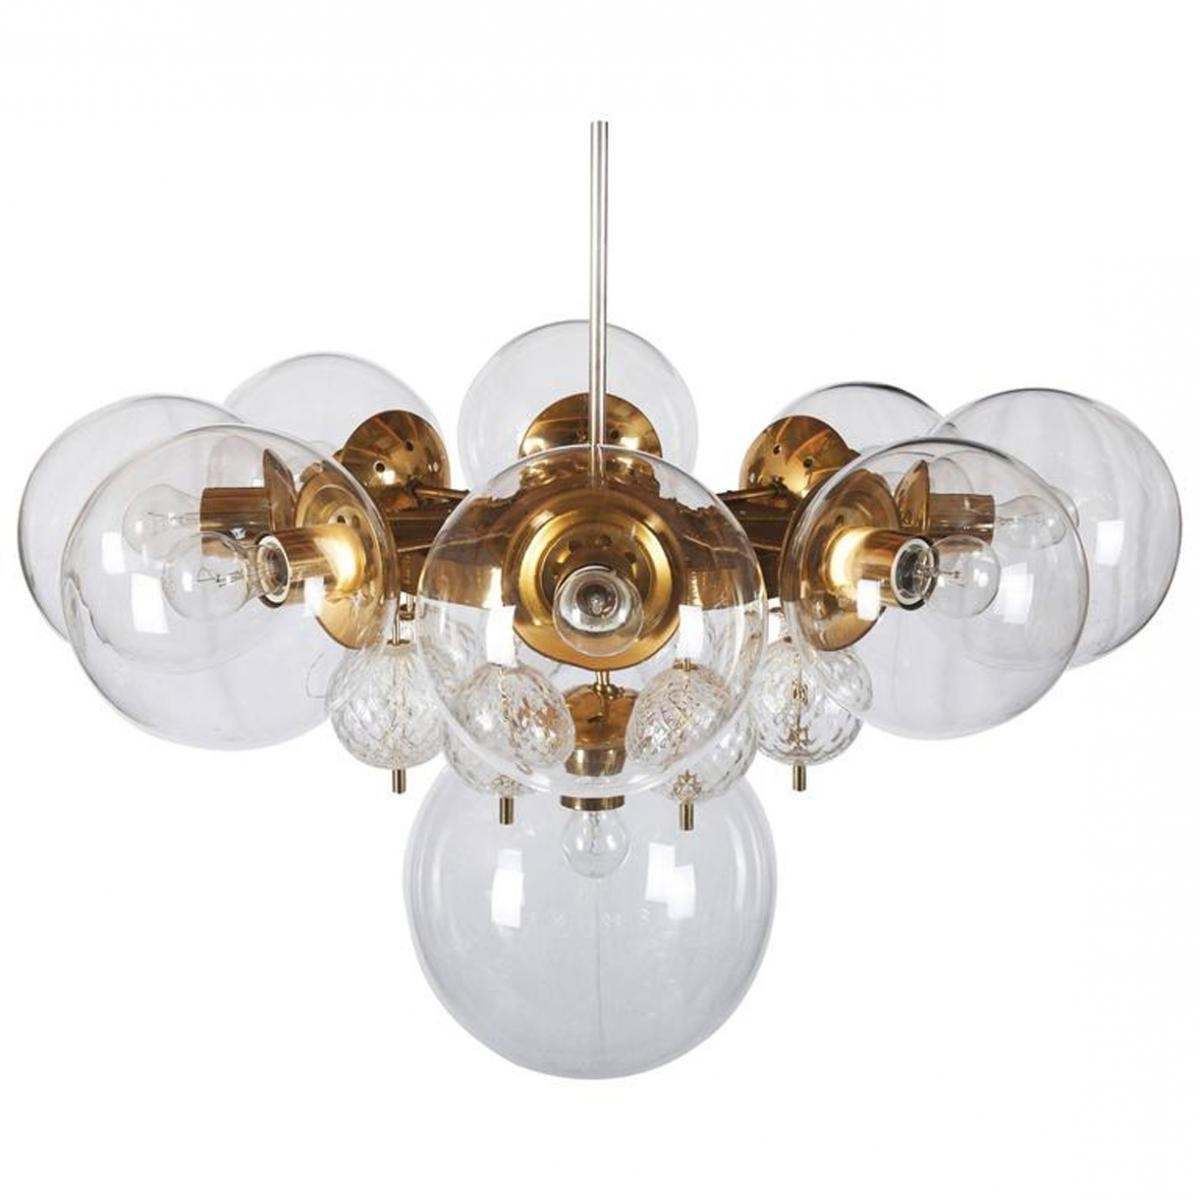 Large Brass Chandelier With Crystal Globes From Kamenicky Senov Pertaining To Popular Large Brass Chandelier (View 7 of 15)